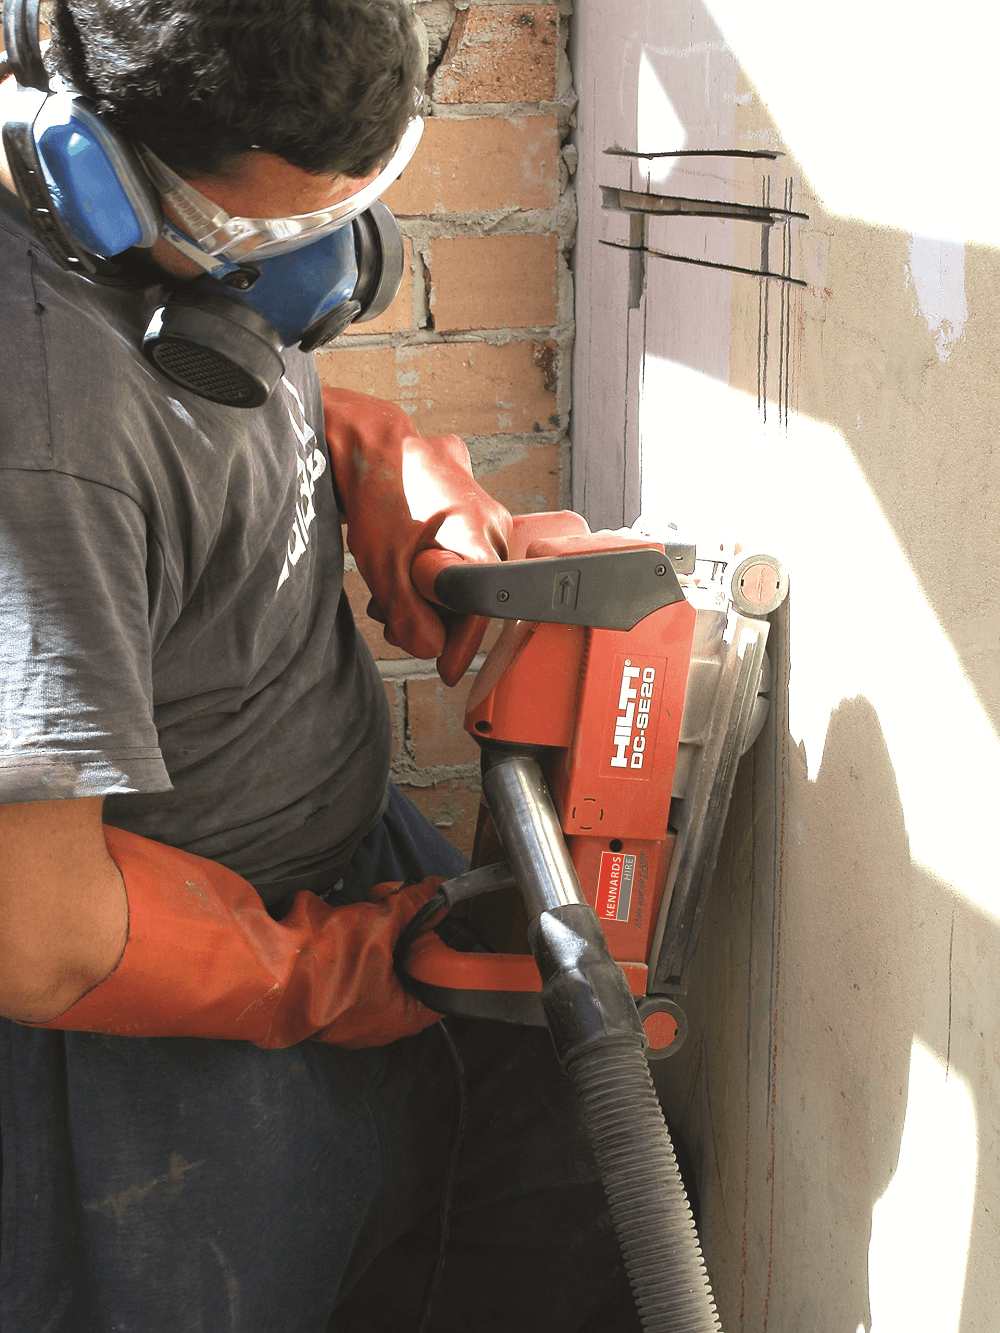 The best work safety gear for tradies